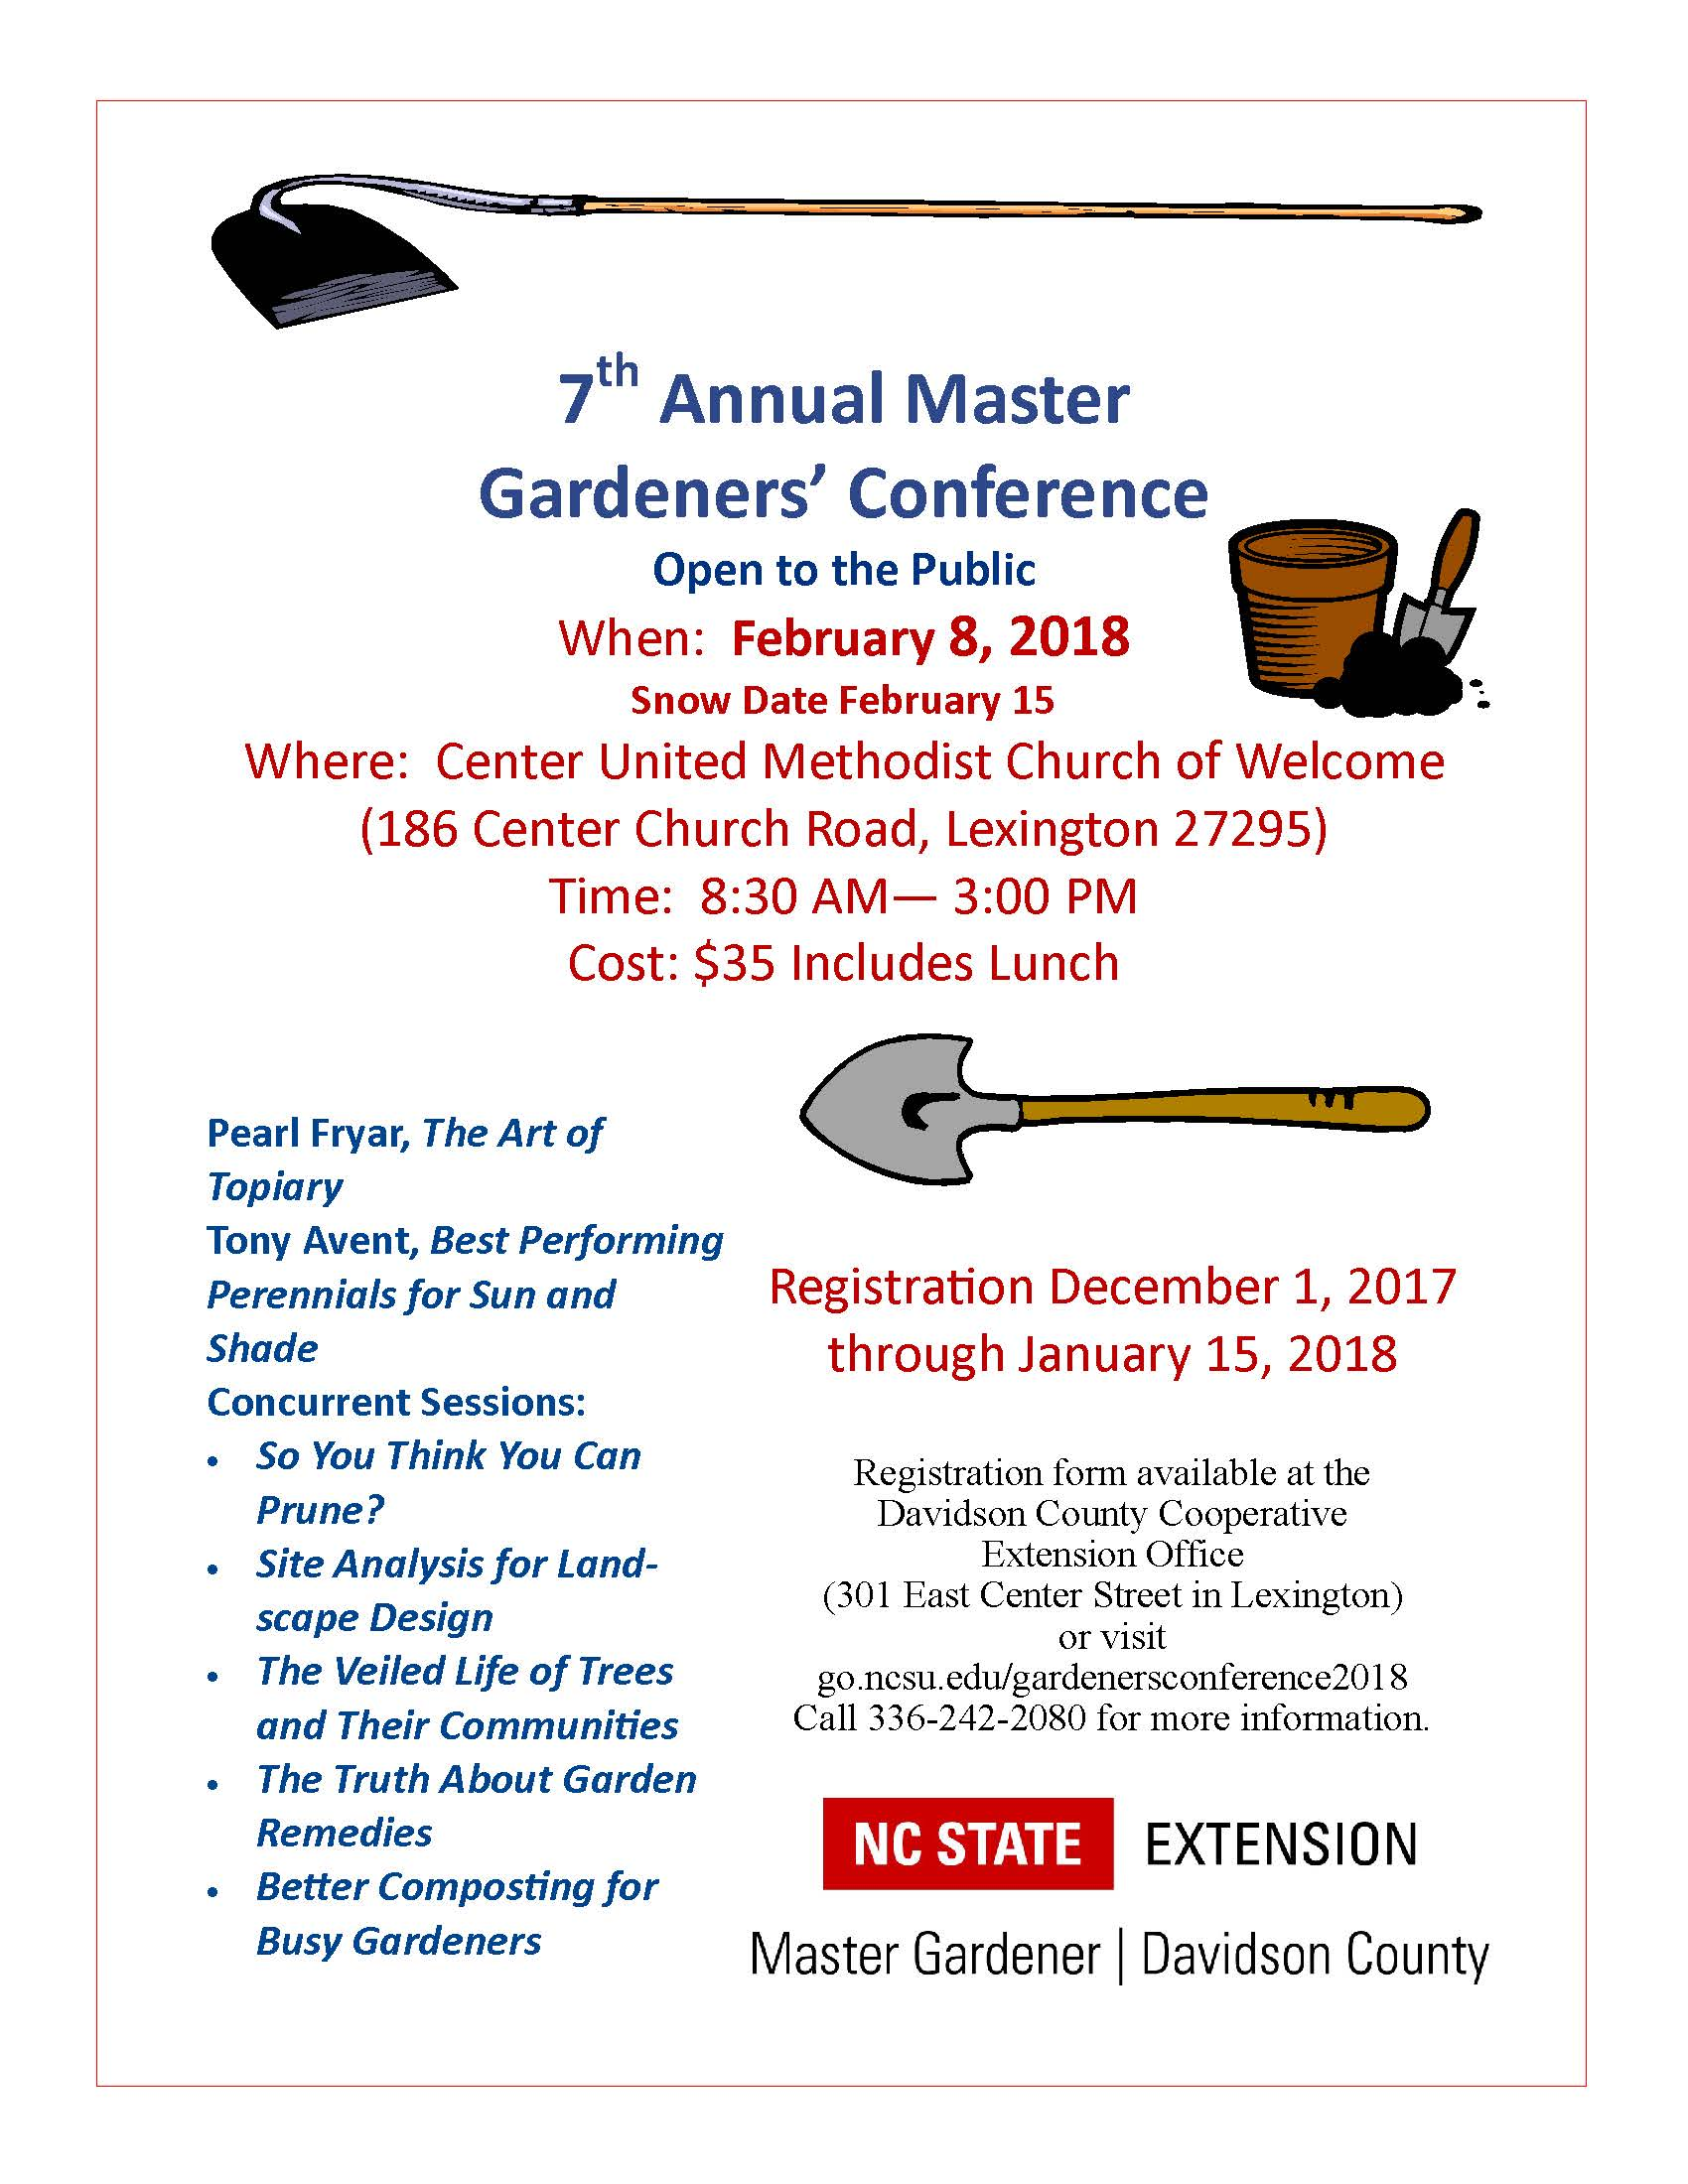 How about a ticket to the Gardeners' Conference! Don't wait to purchase  your ticket as space is limited and seats go fast!